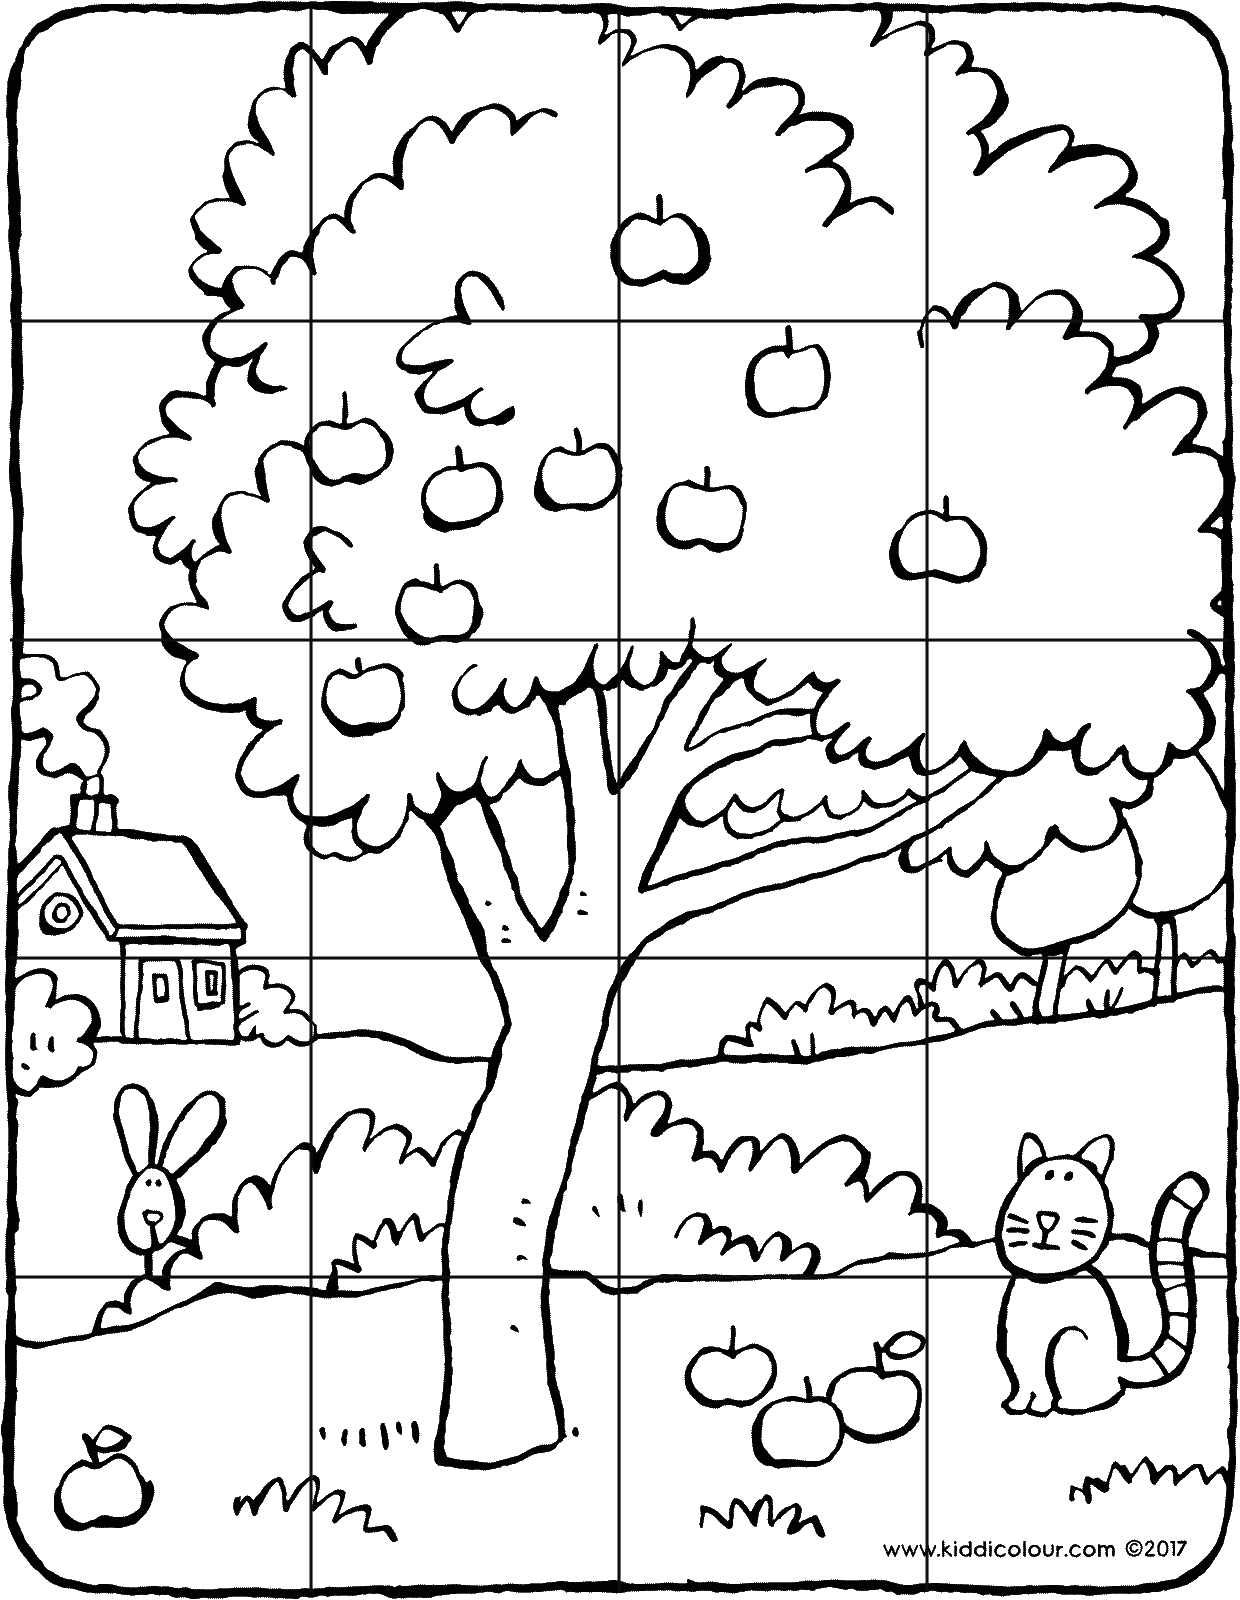 20-piece apple tree puzzle colouring page drawing picture 01V